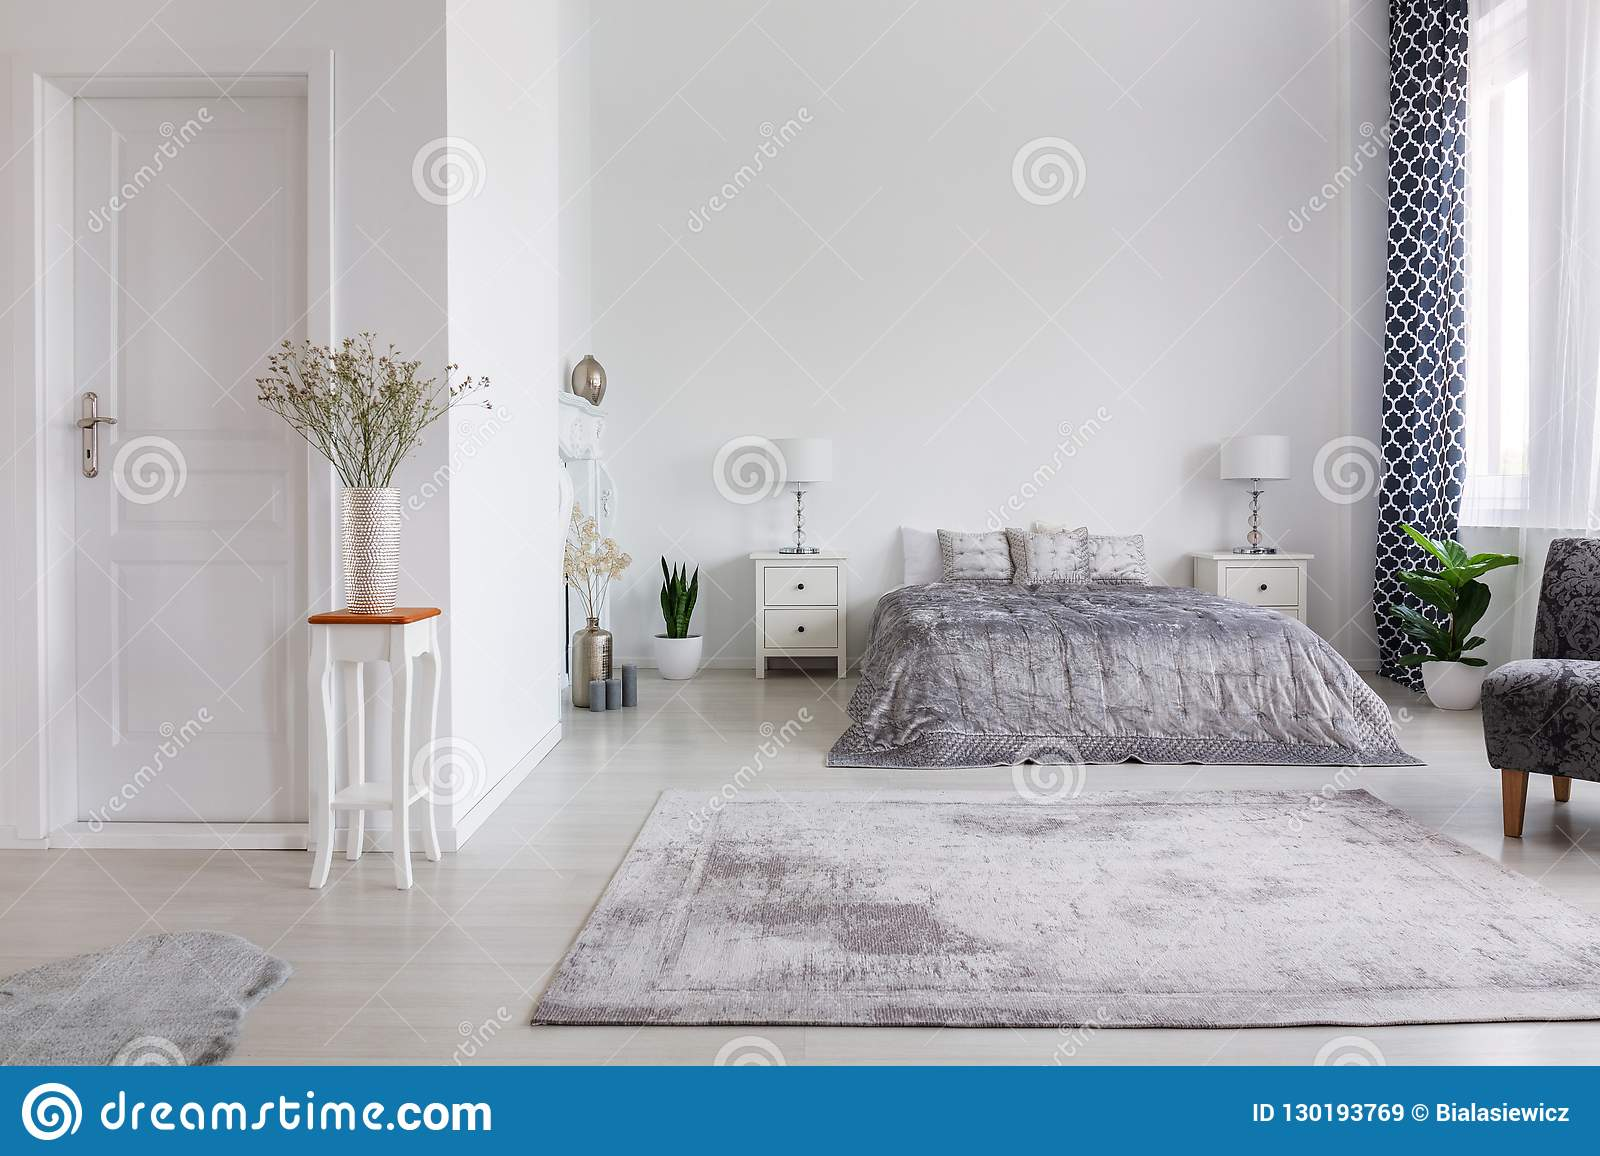 Elegant new york style bedroom with comfortable bed, real photo with copy space on the white wall